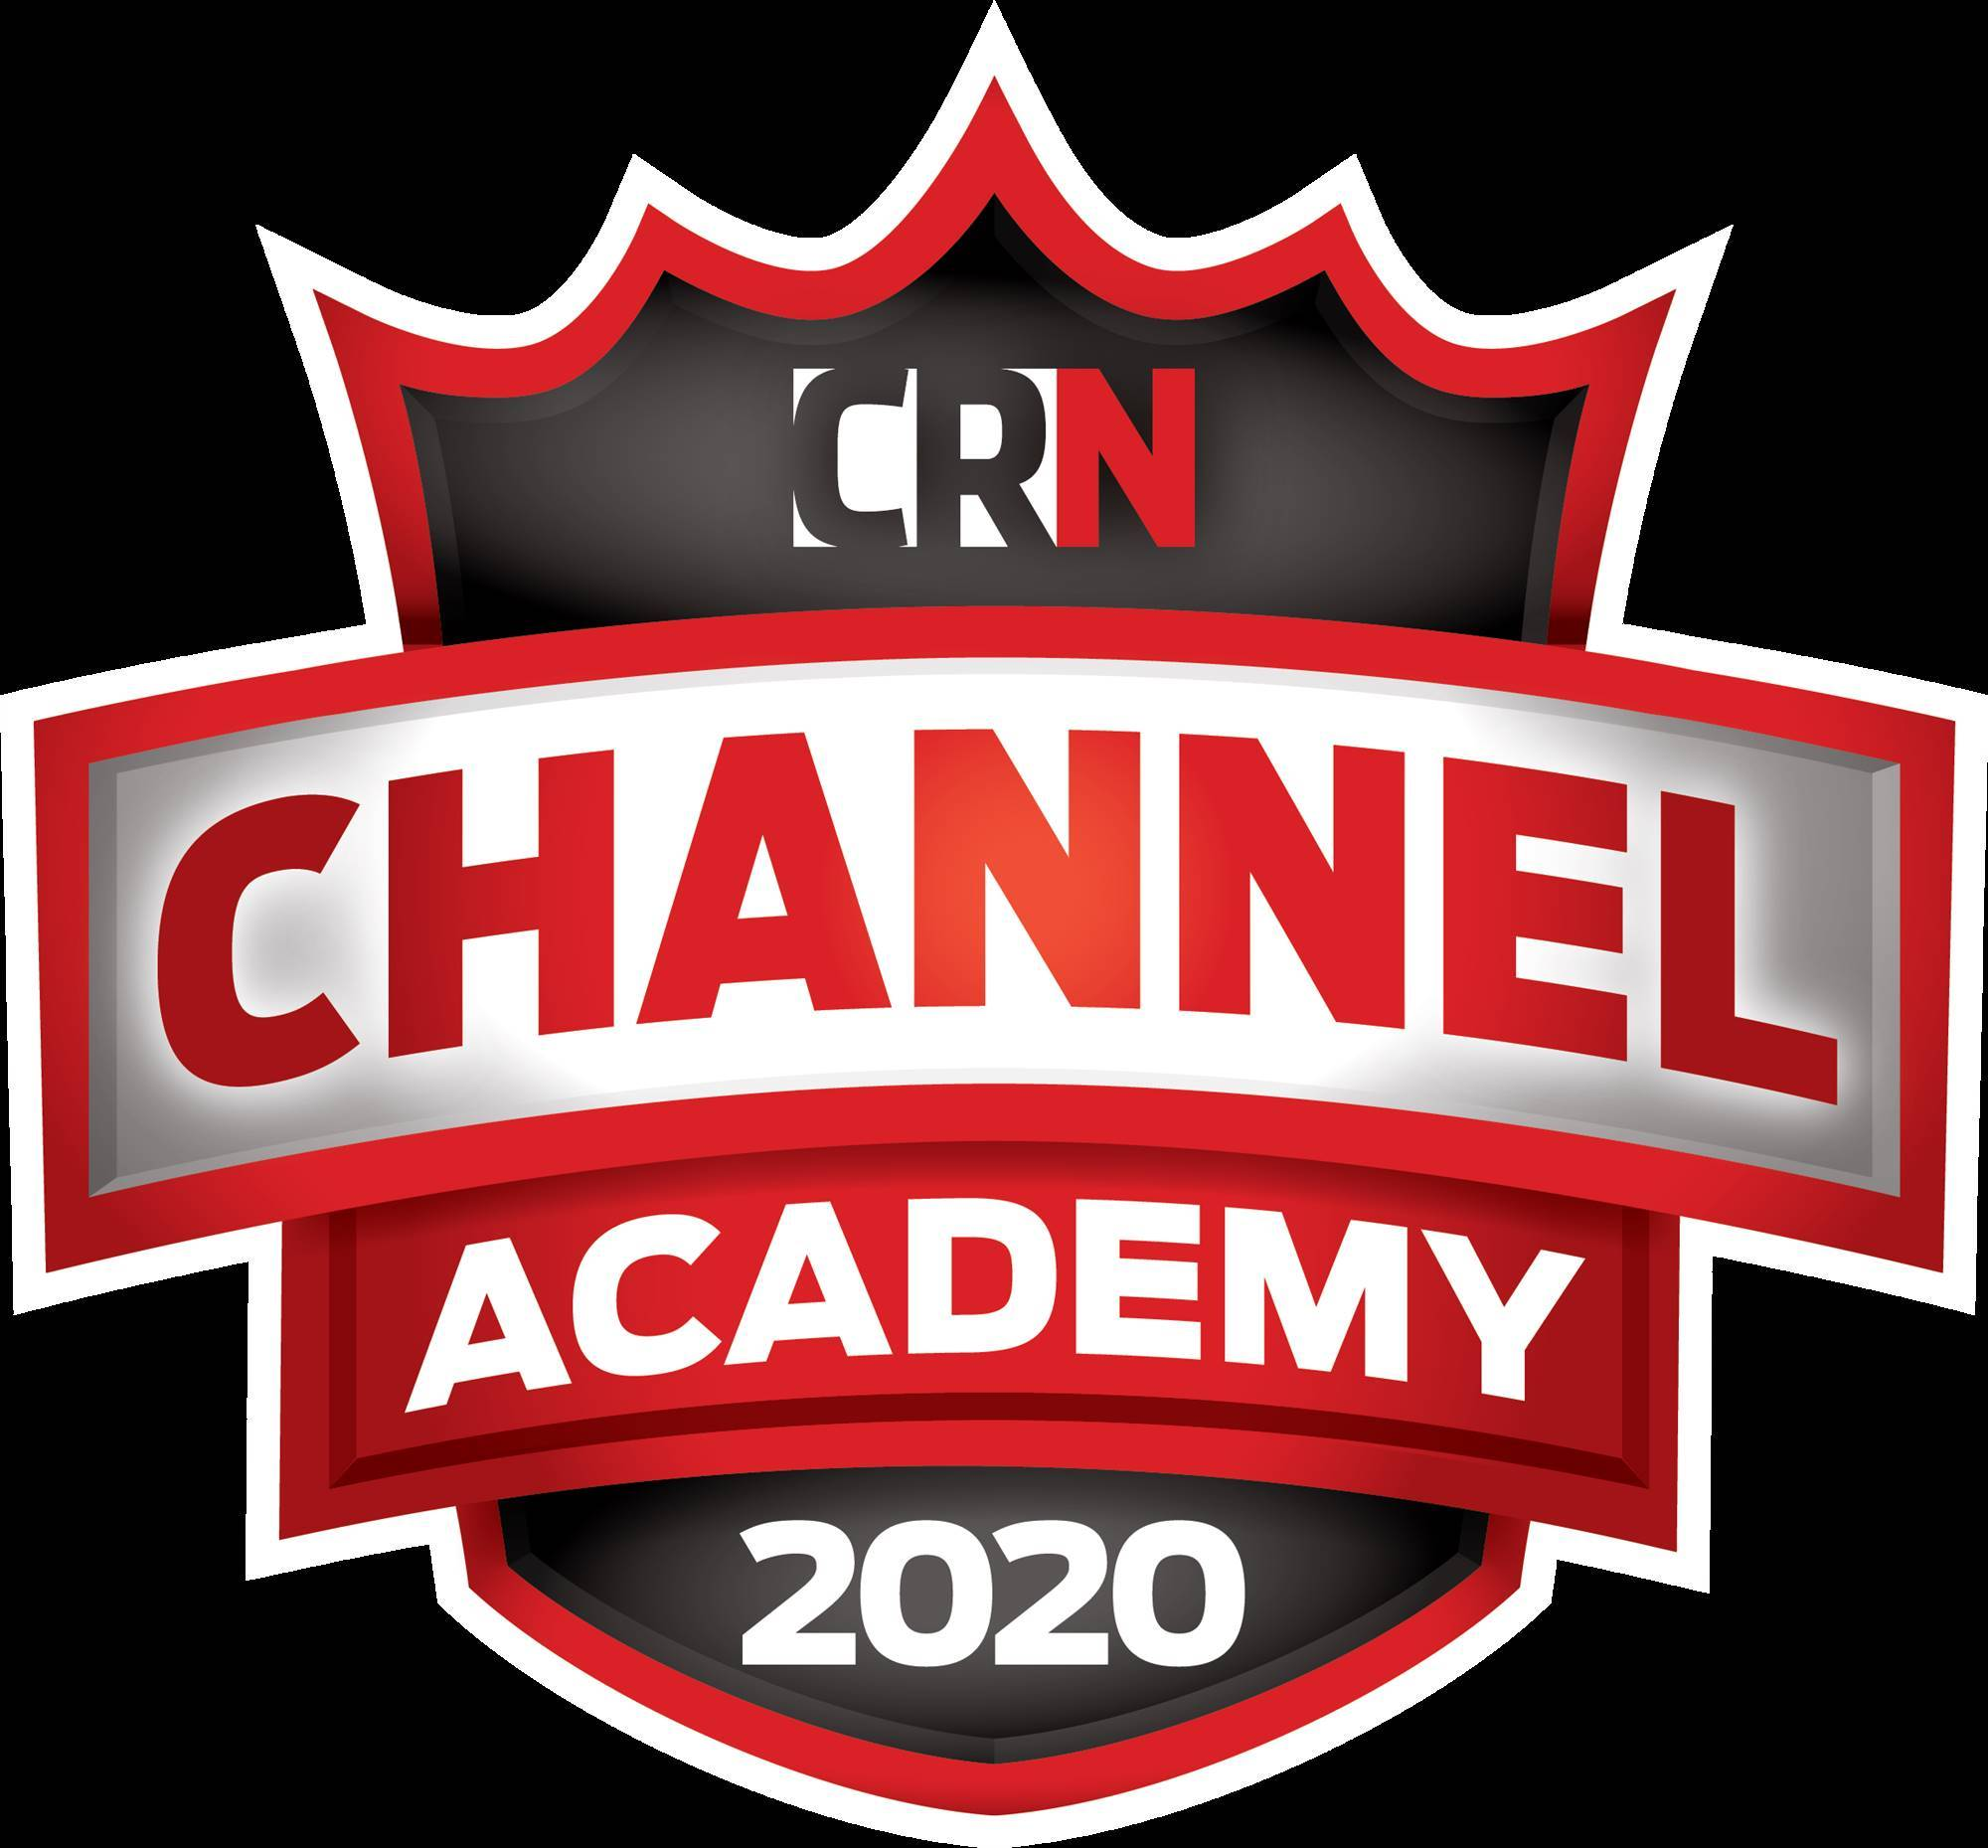 CRN launches Channel Academy